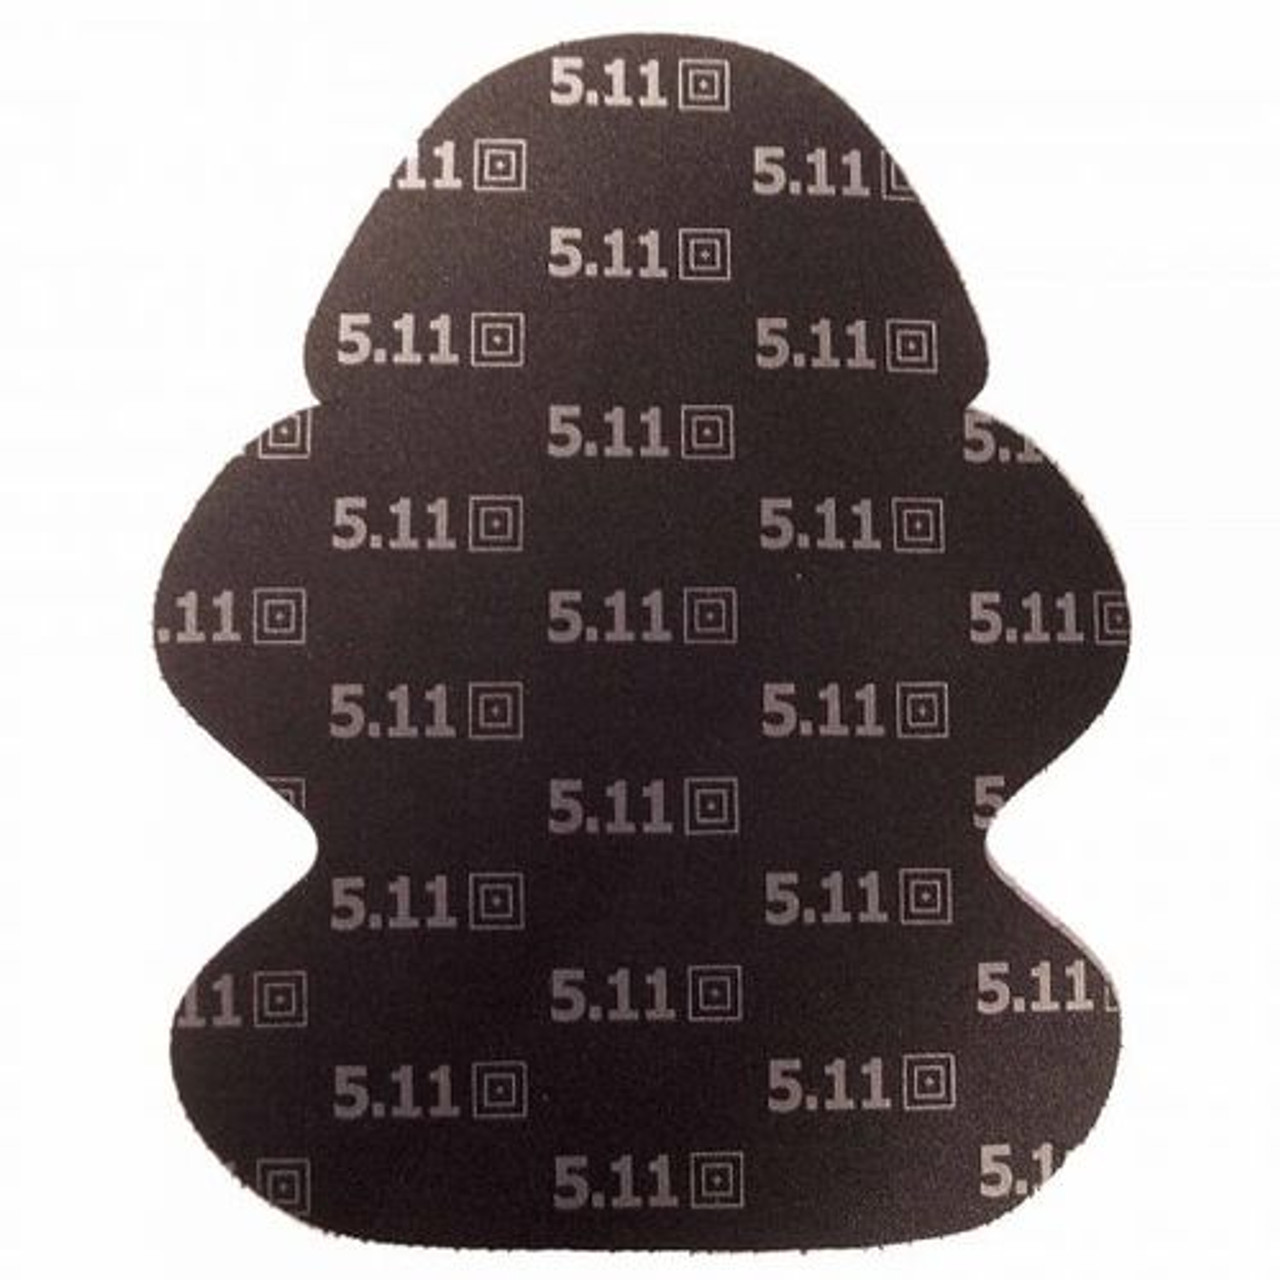 5.11 Tactical Knee Pads, pair, available in Black 59008